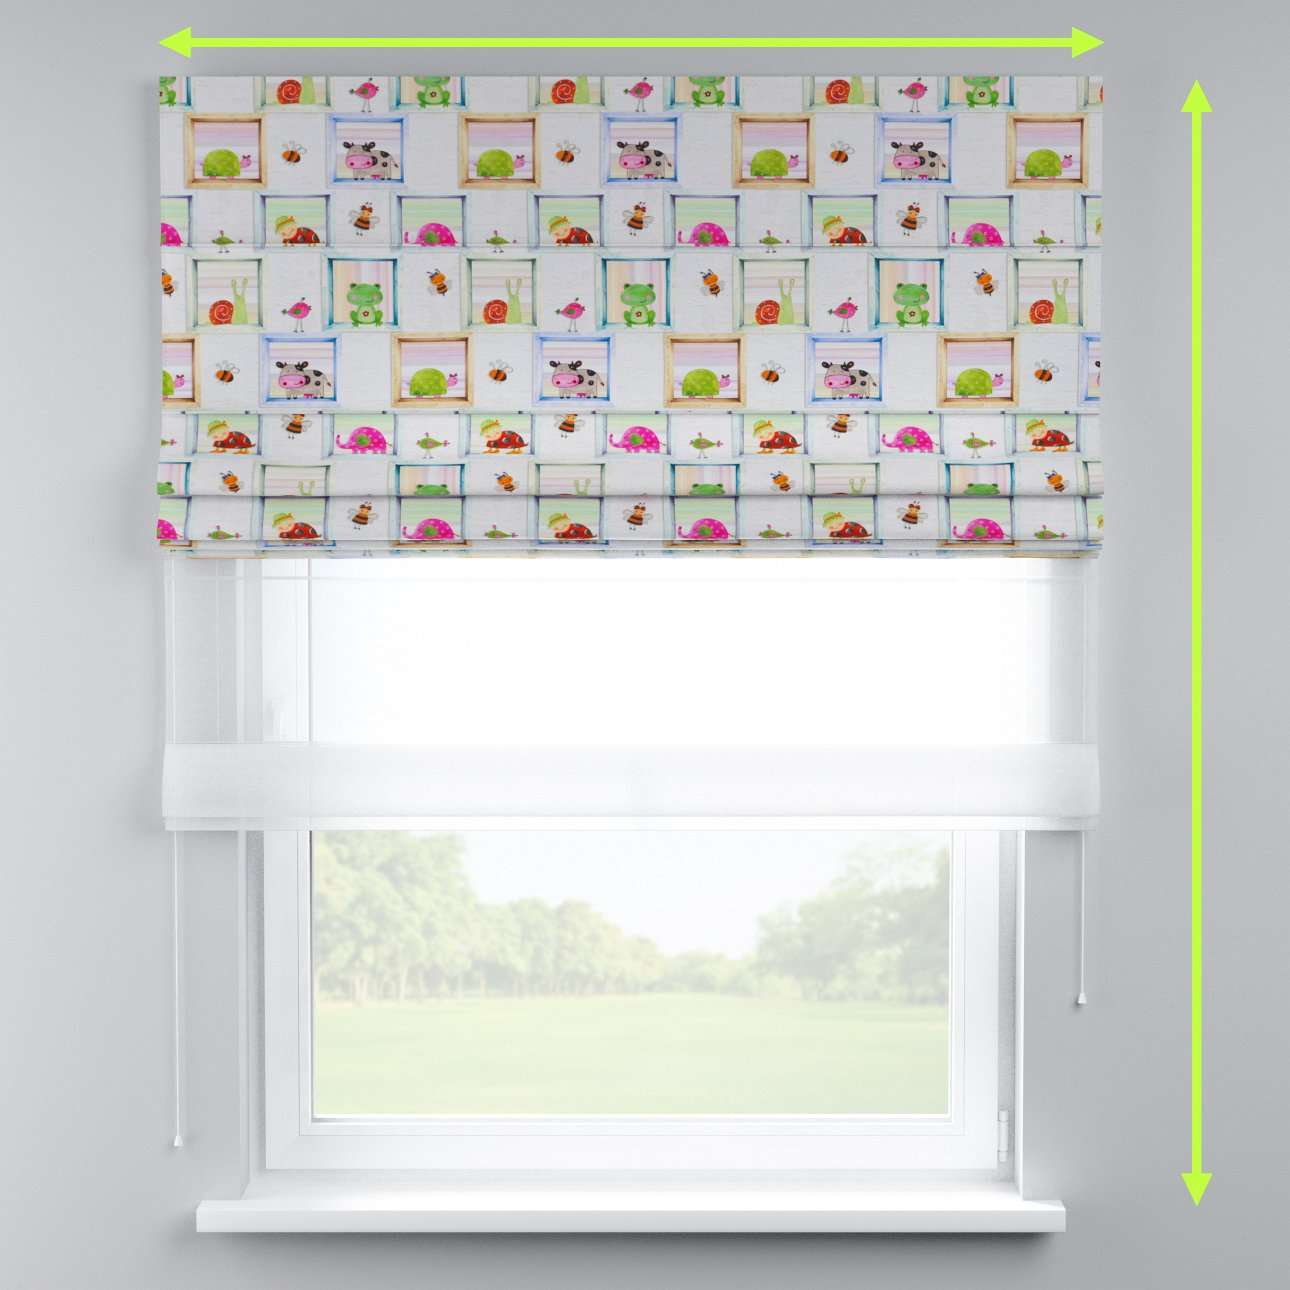 Voile and fabric roman blind (DUO II) in collection Apanona, fabric: 151-04